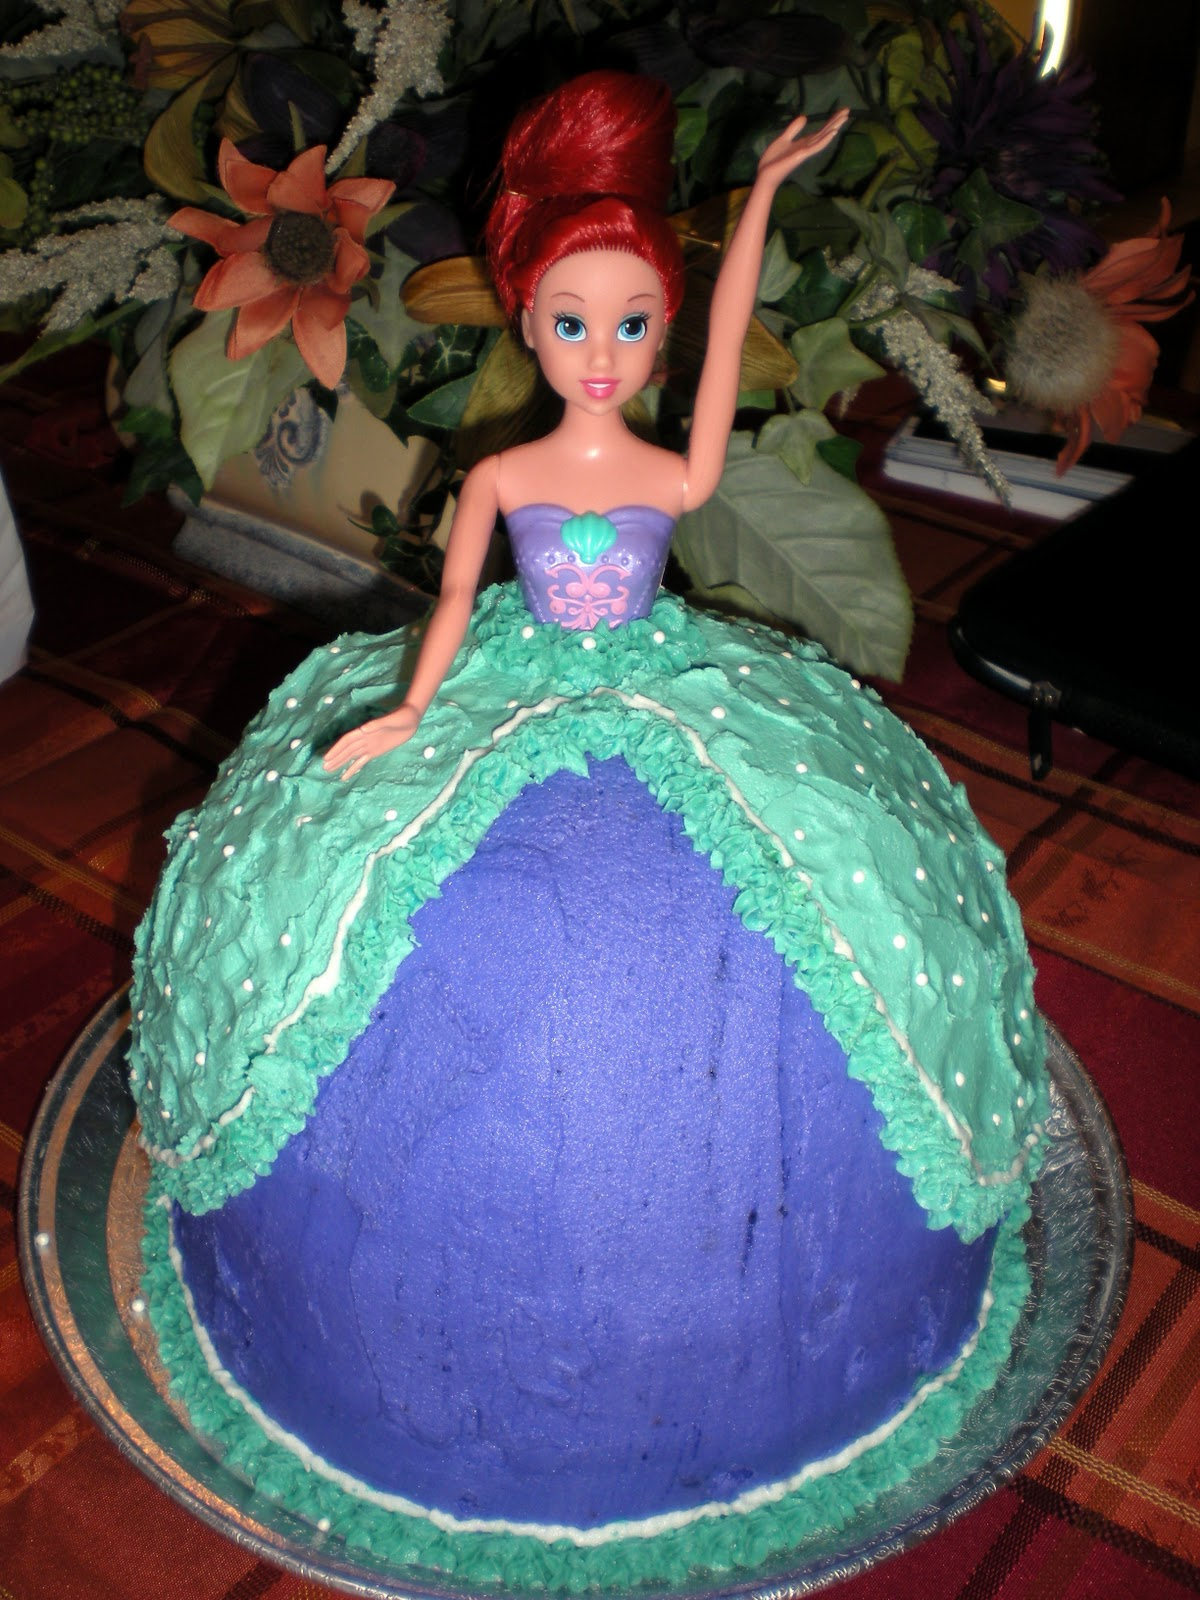 Hinckley Health and Happiness: Barbie Cake